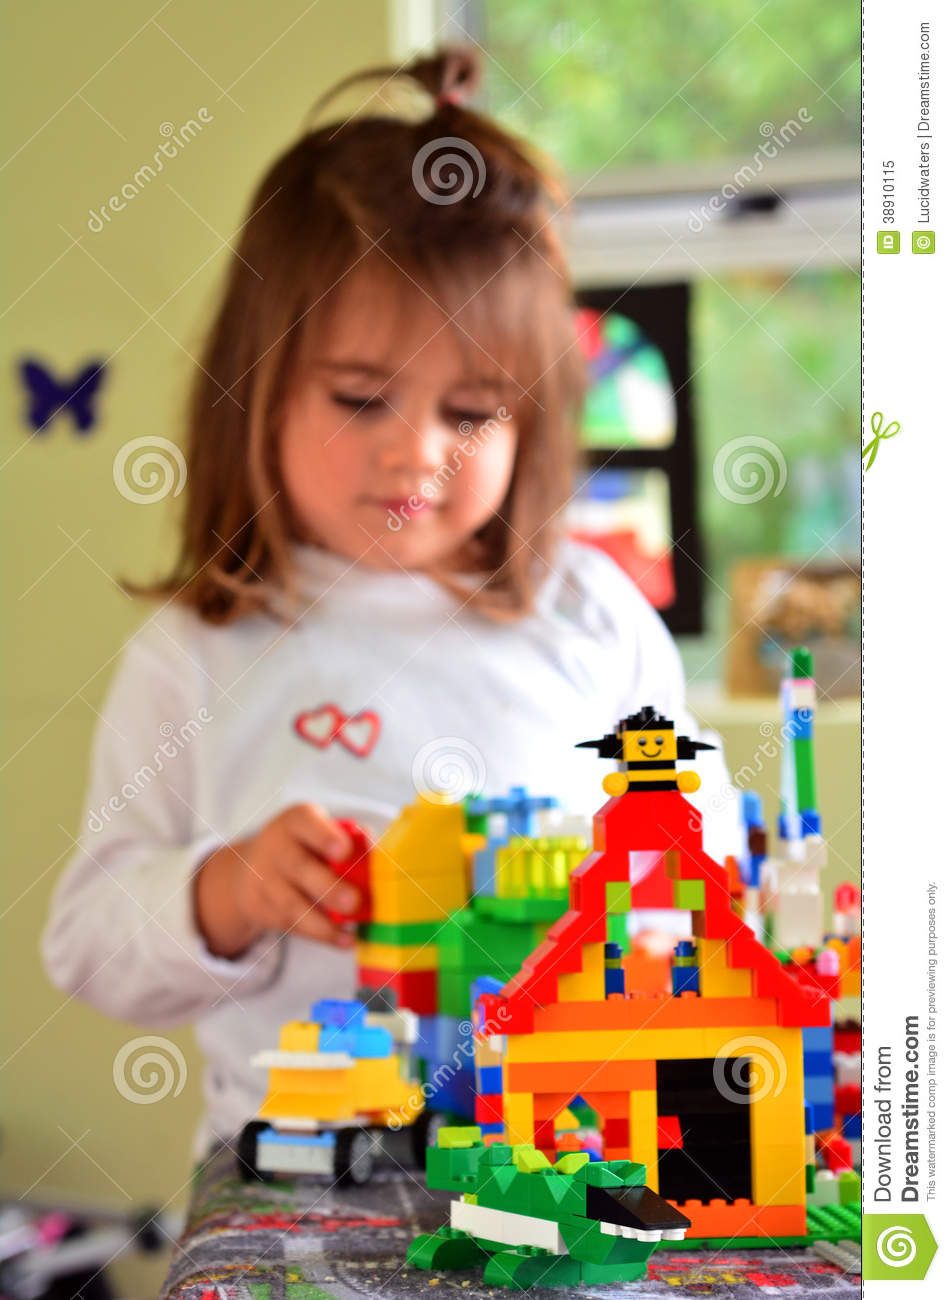 Play With Patterns Prints And Lots Of Accessories For: Child Play With Lego Construction Toy Editorial Image